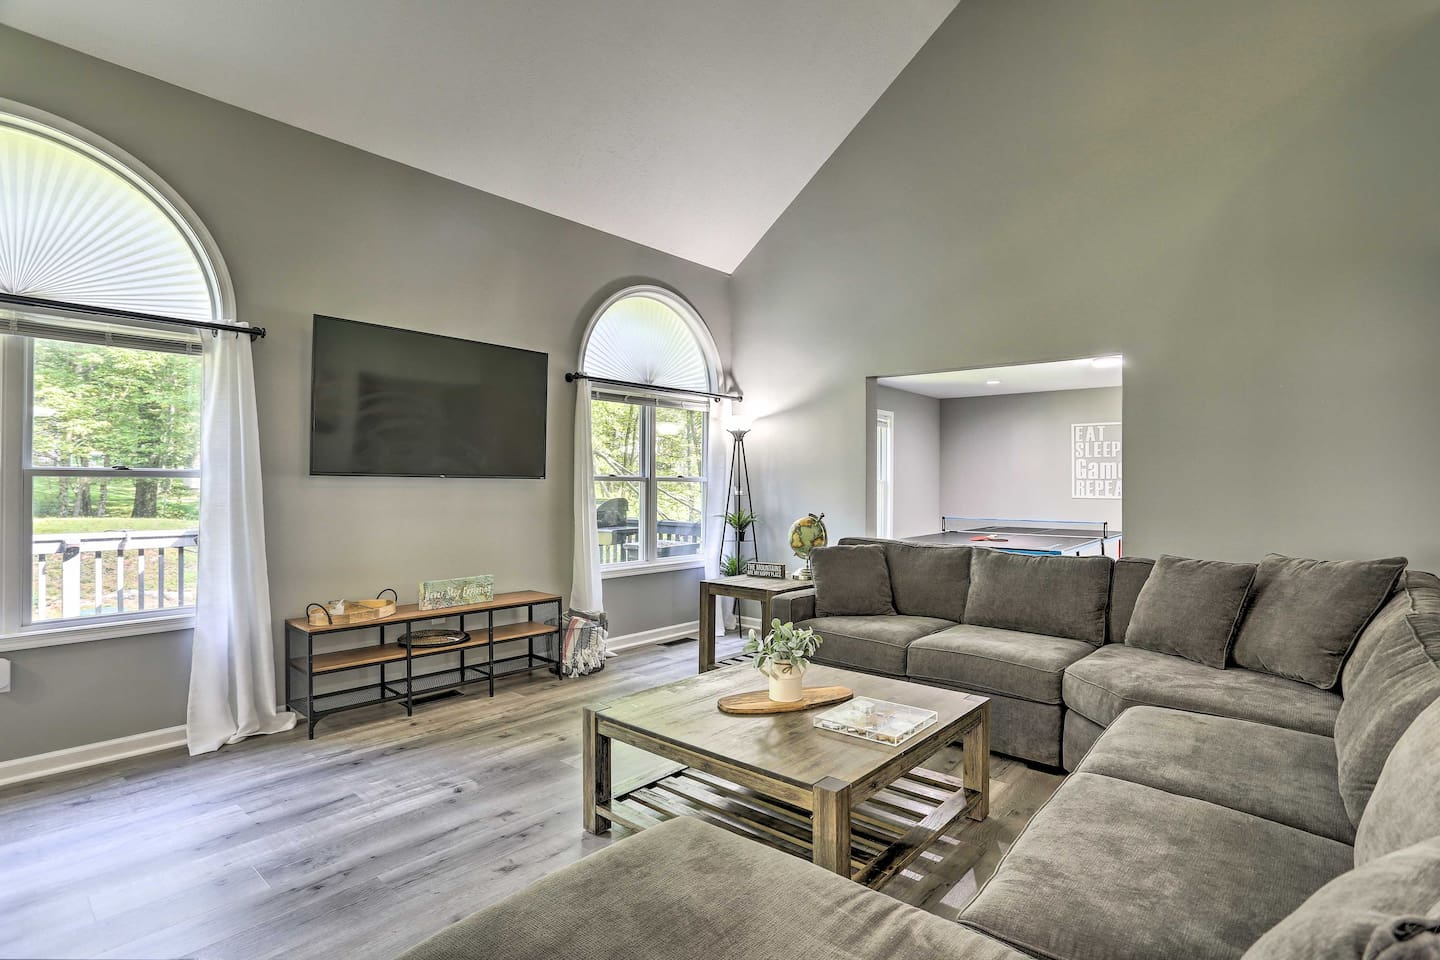 There's ample space for everyone to kick back under the vaulted ceilings.